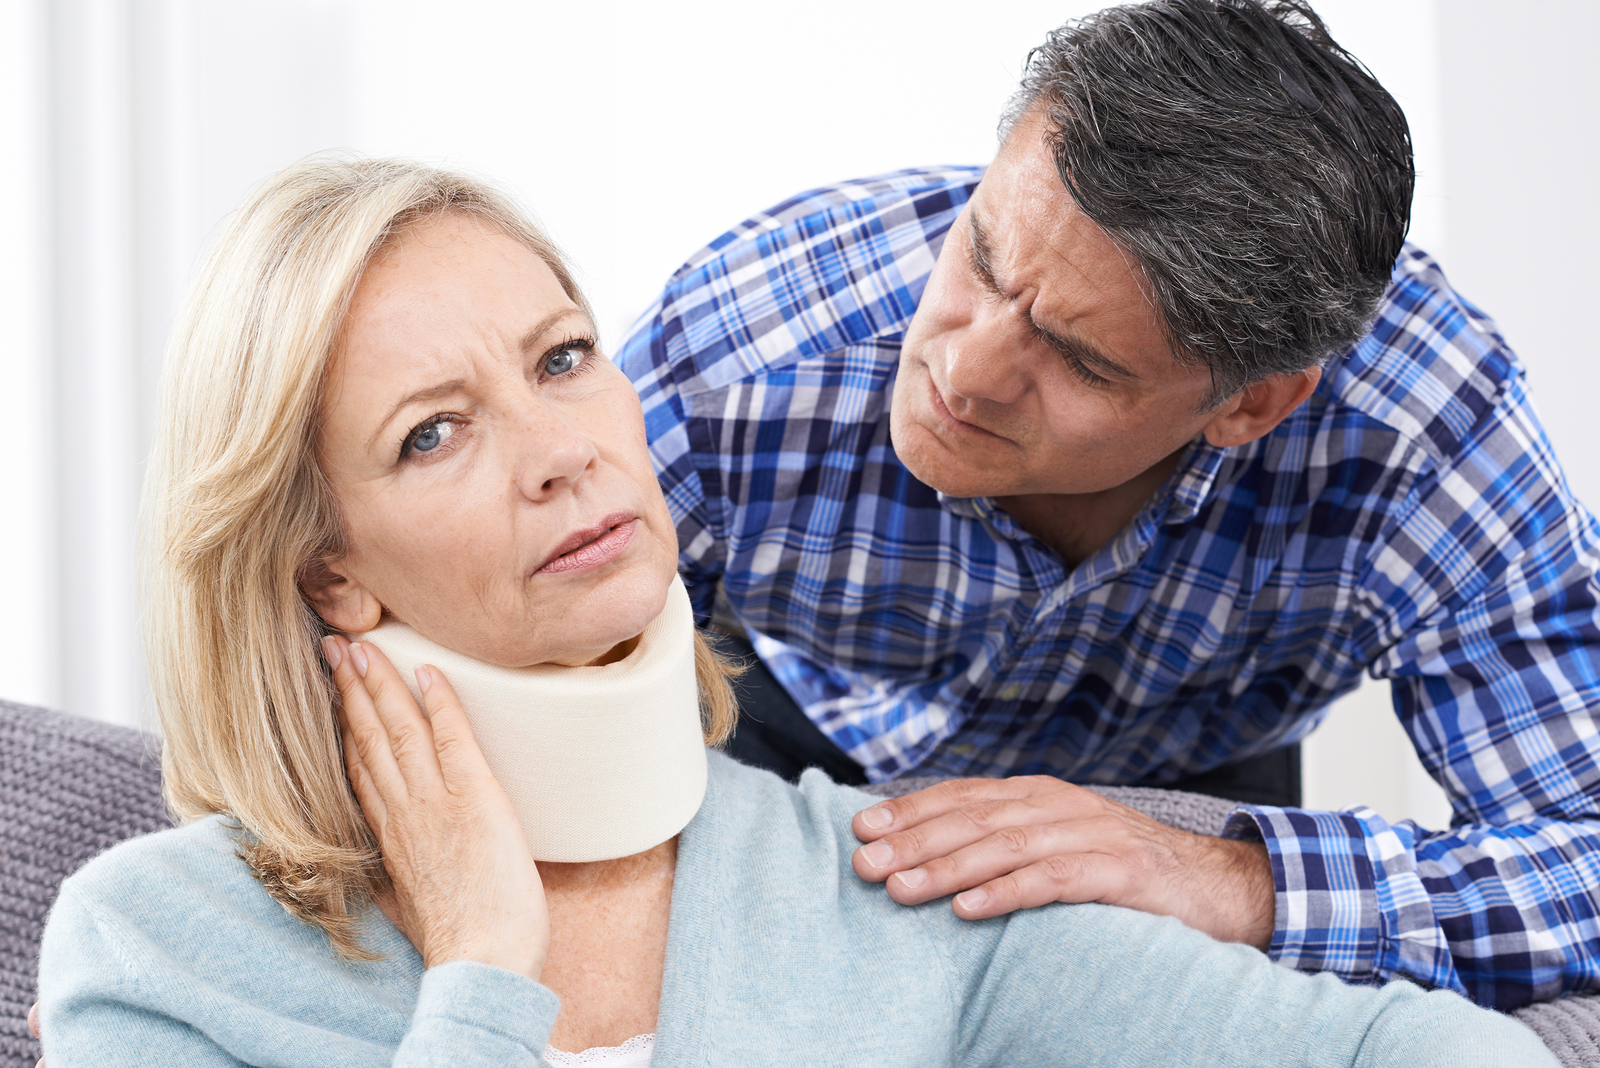 Car Accident Whiplash Treatment at Miami Accident Center